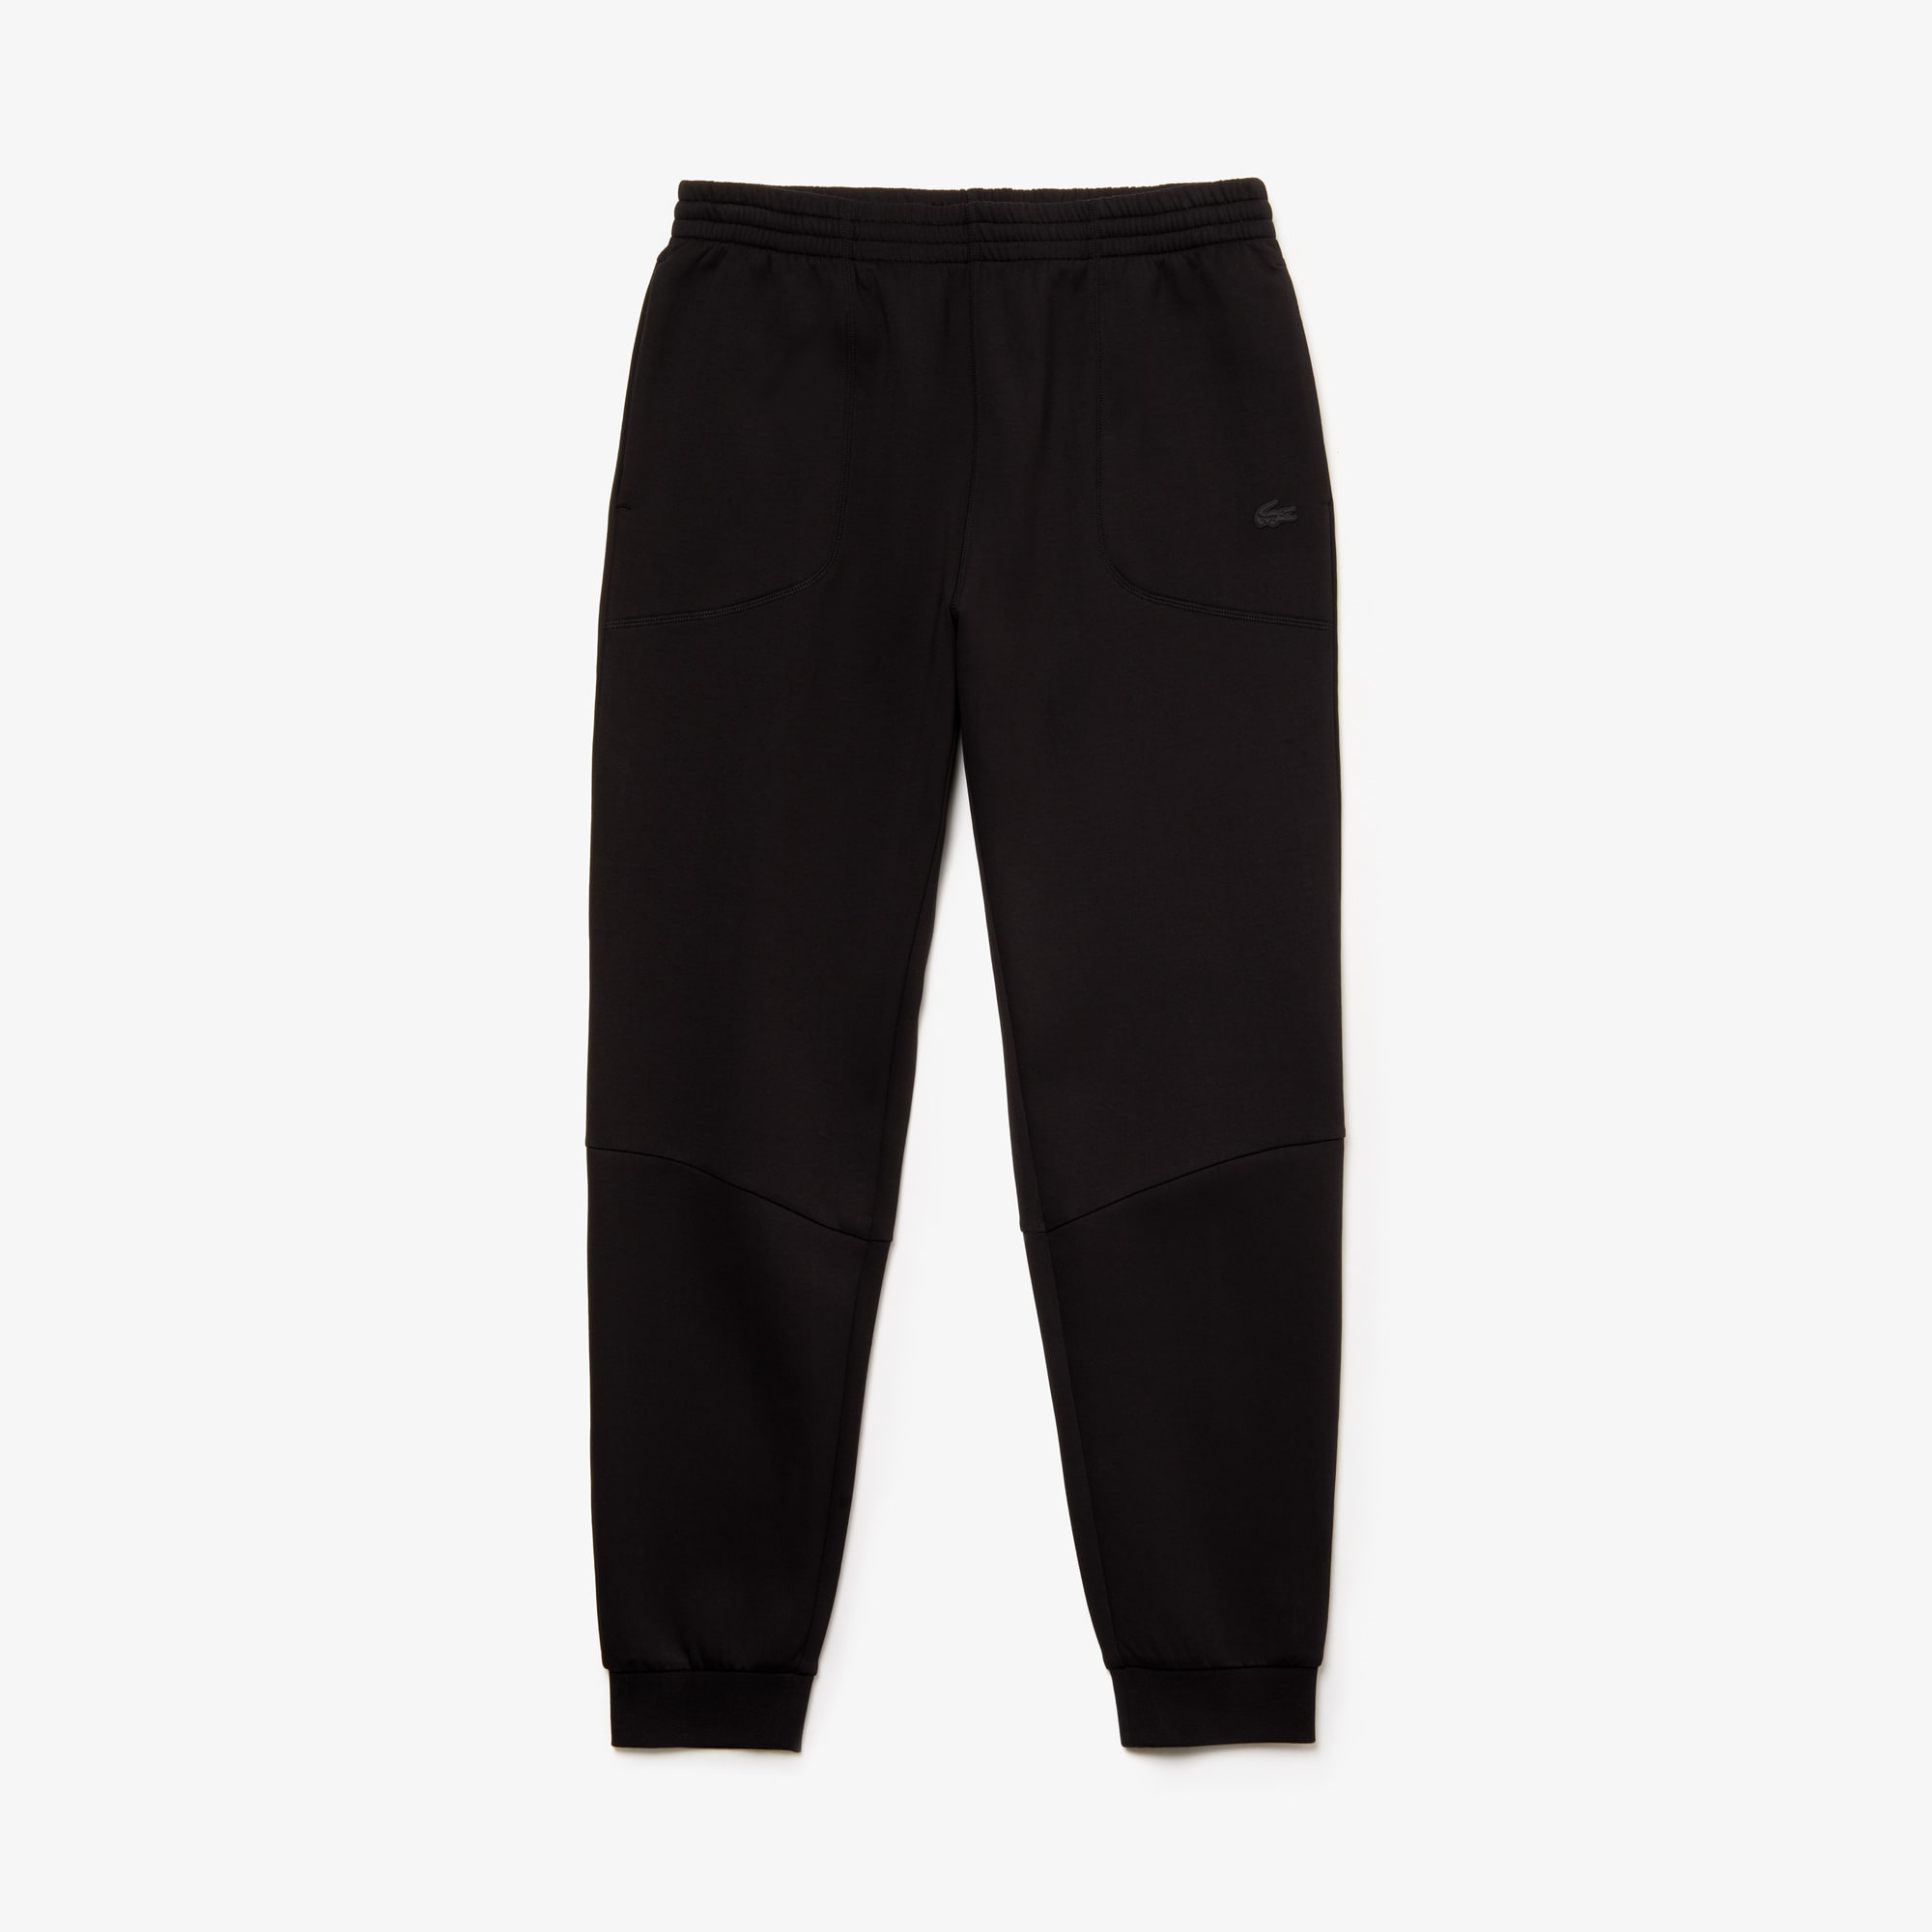 Men's Lacoste Motion Fleece Sweatpants